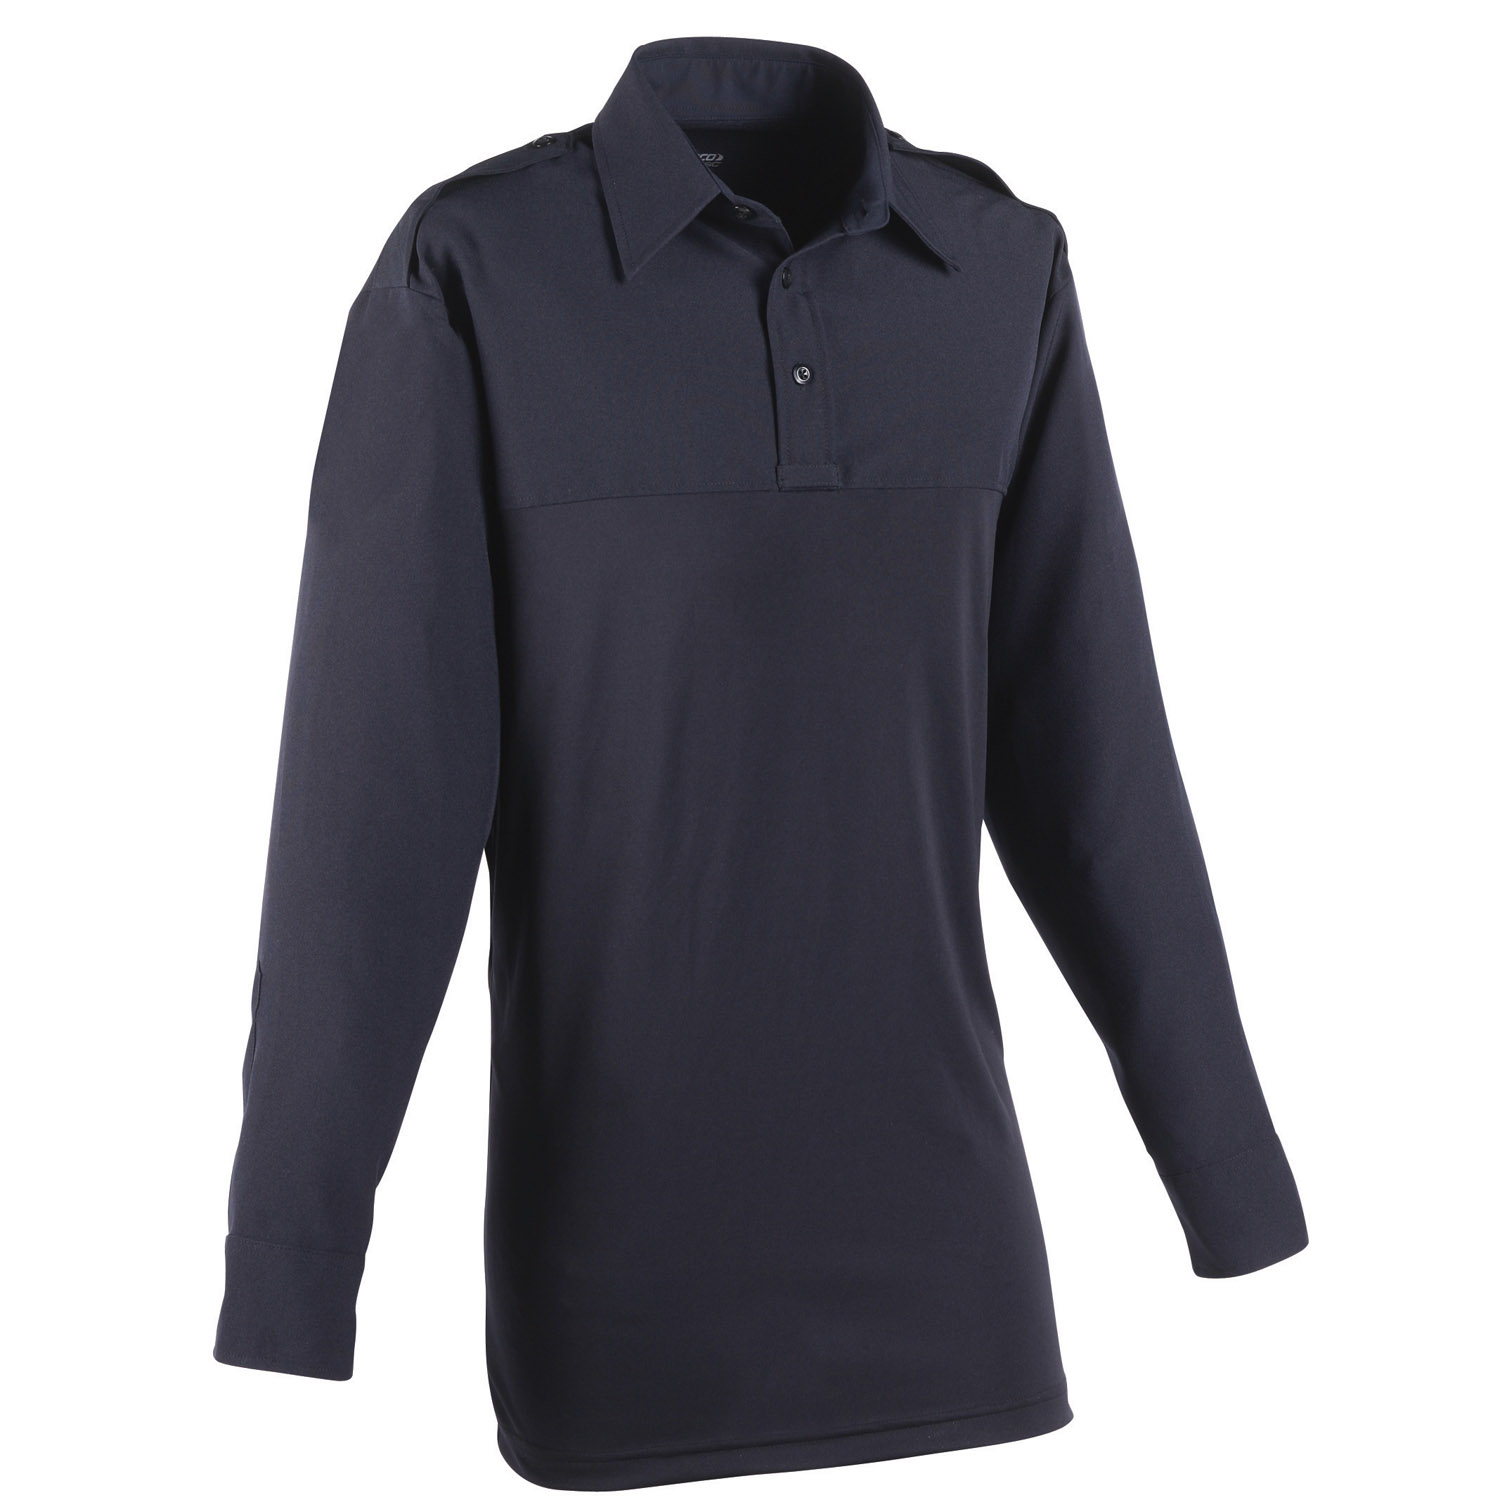 Elbeco Ladies Choice Long Sleeve Undervest Shirt